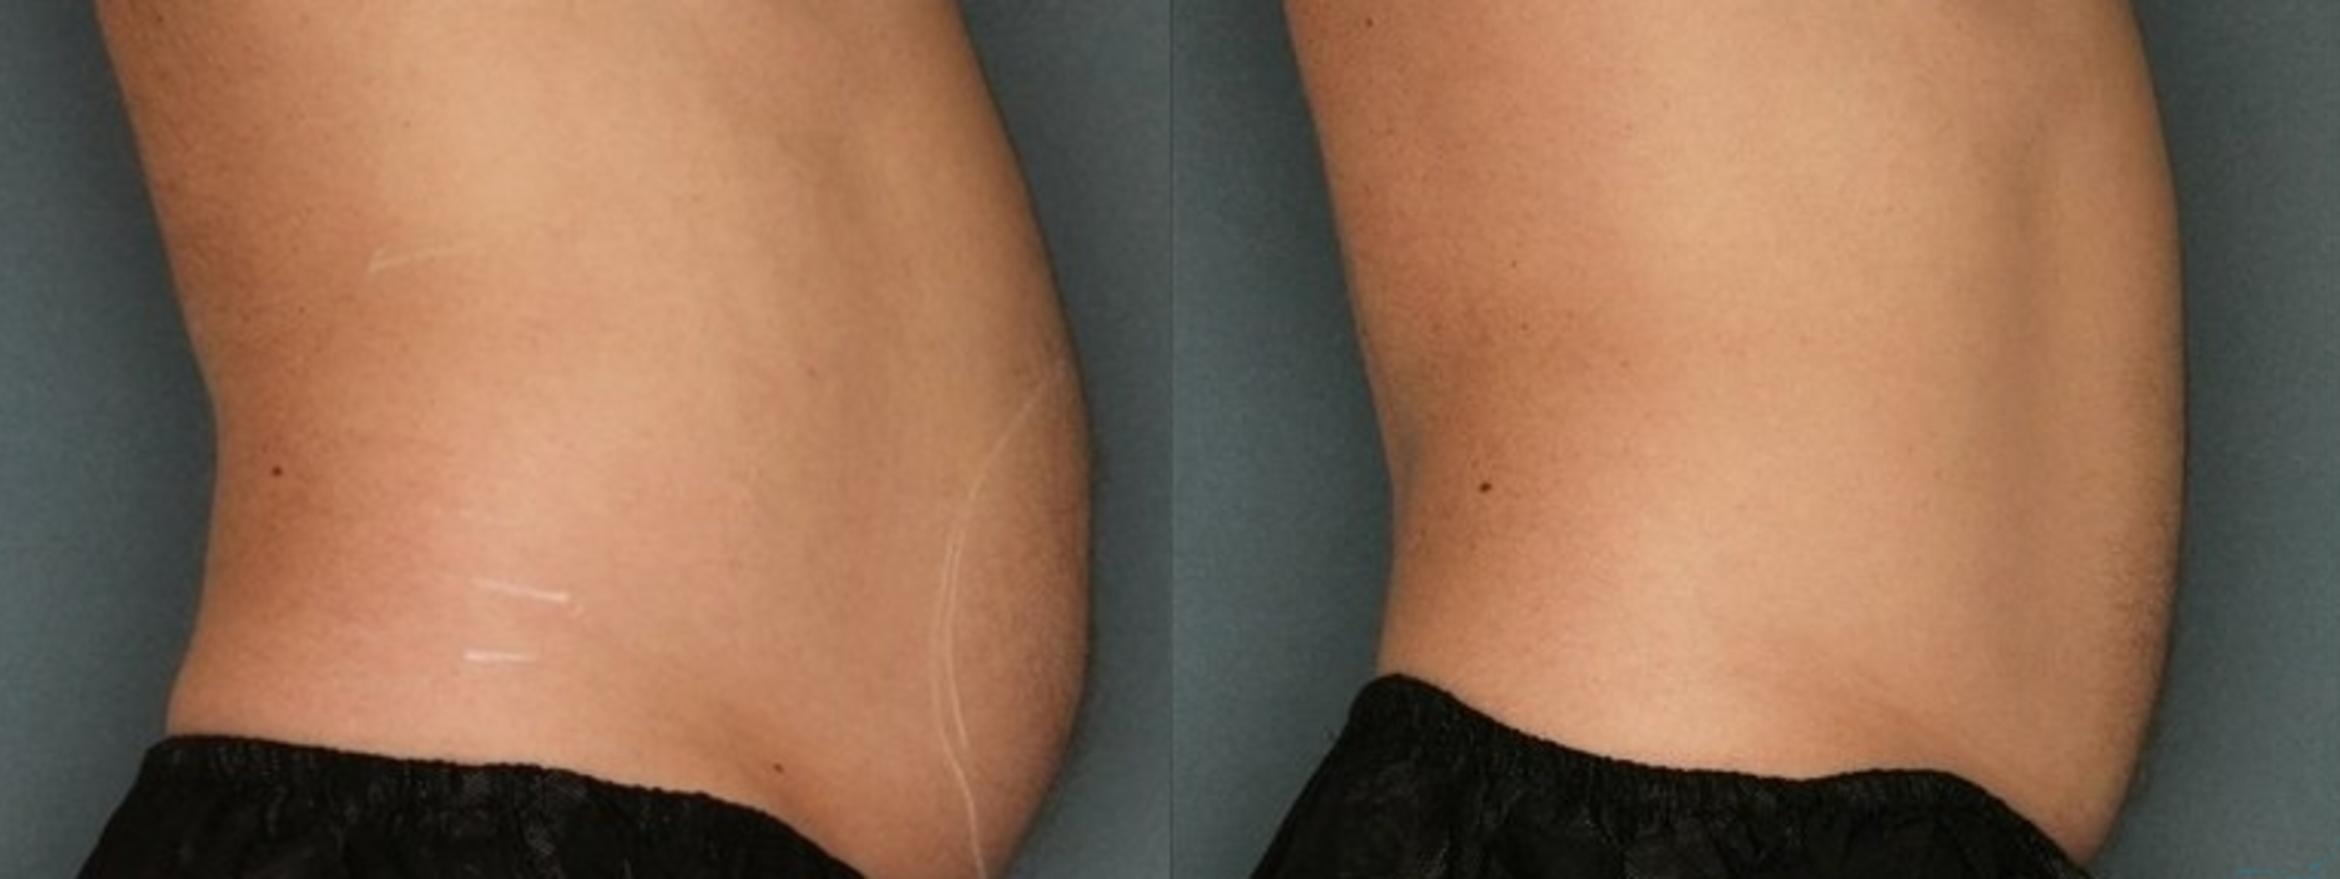 Body Contouring Case 35 Before & After Right Side | Livermore, CA | Silhouette Med Spa & Weight Management